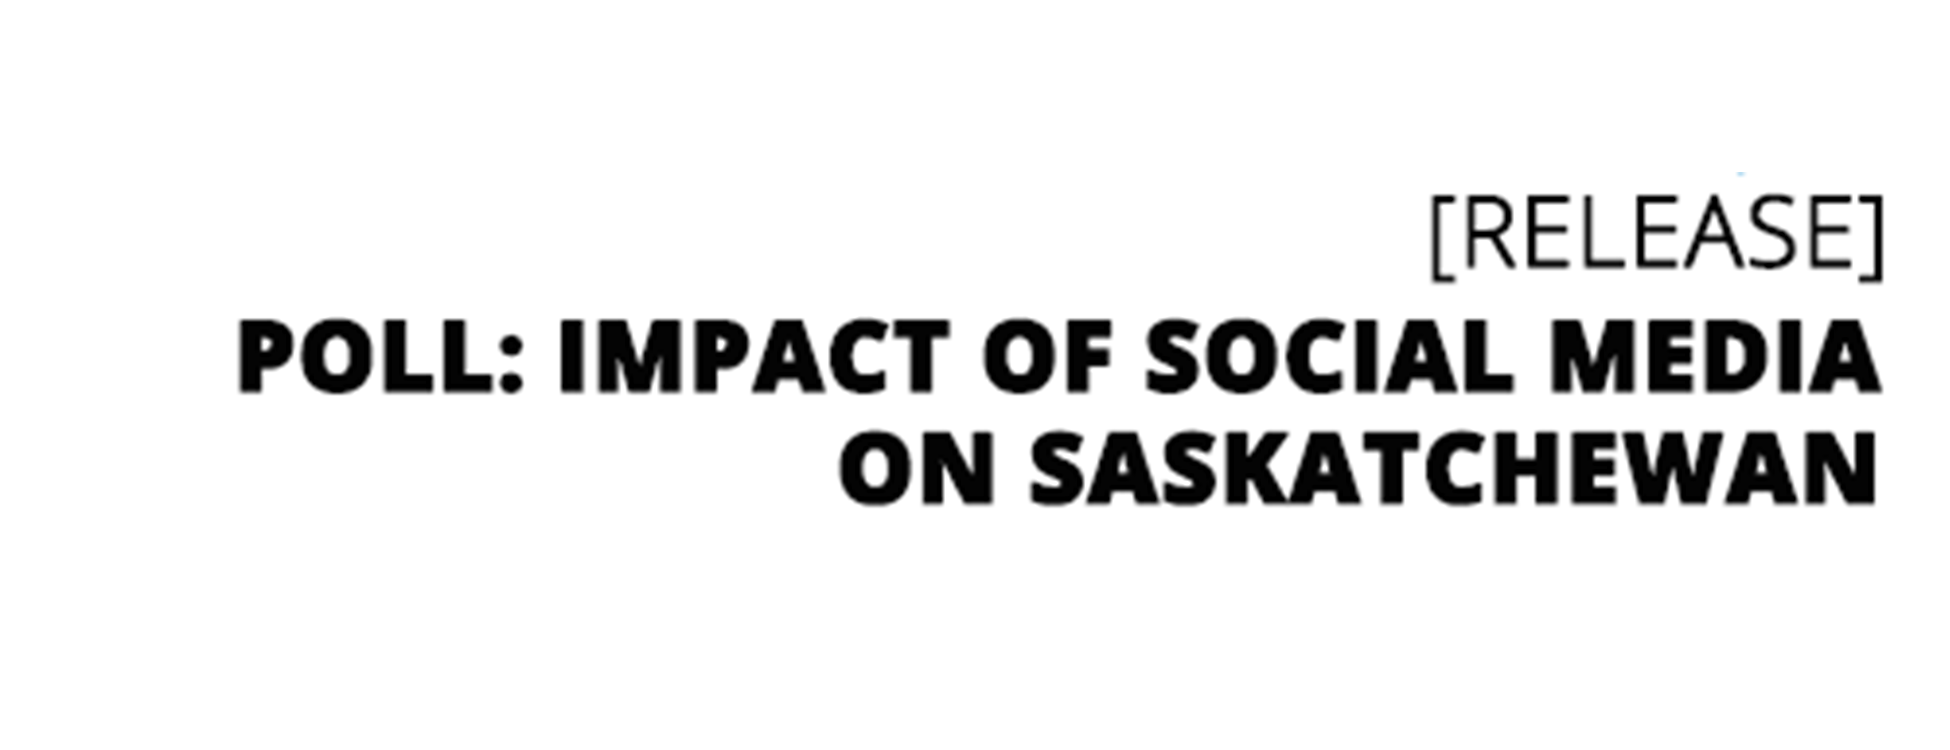 social-media-impact-saskatchewan-insightrix-2018-harrasment